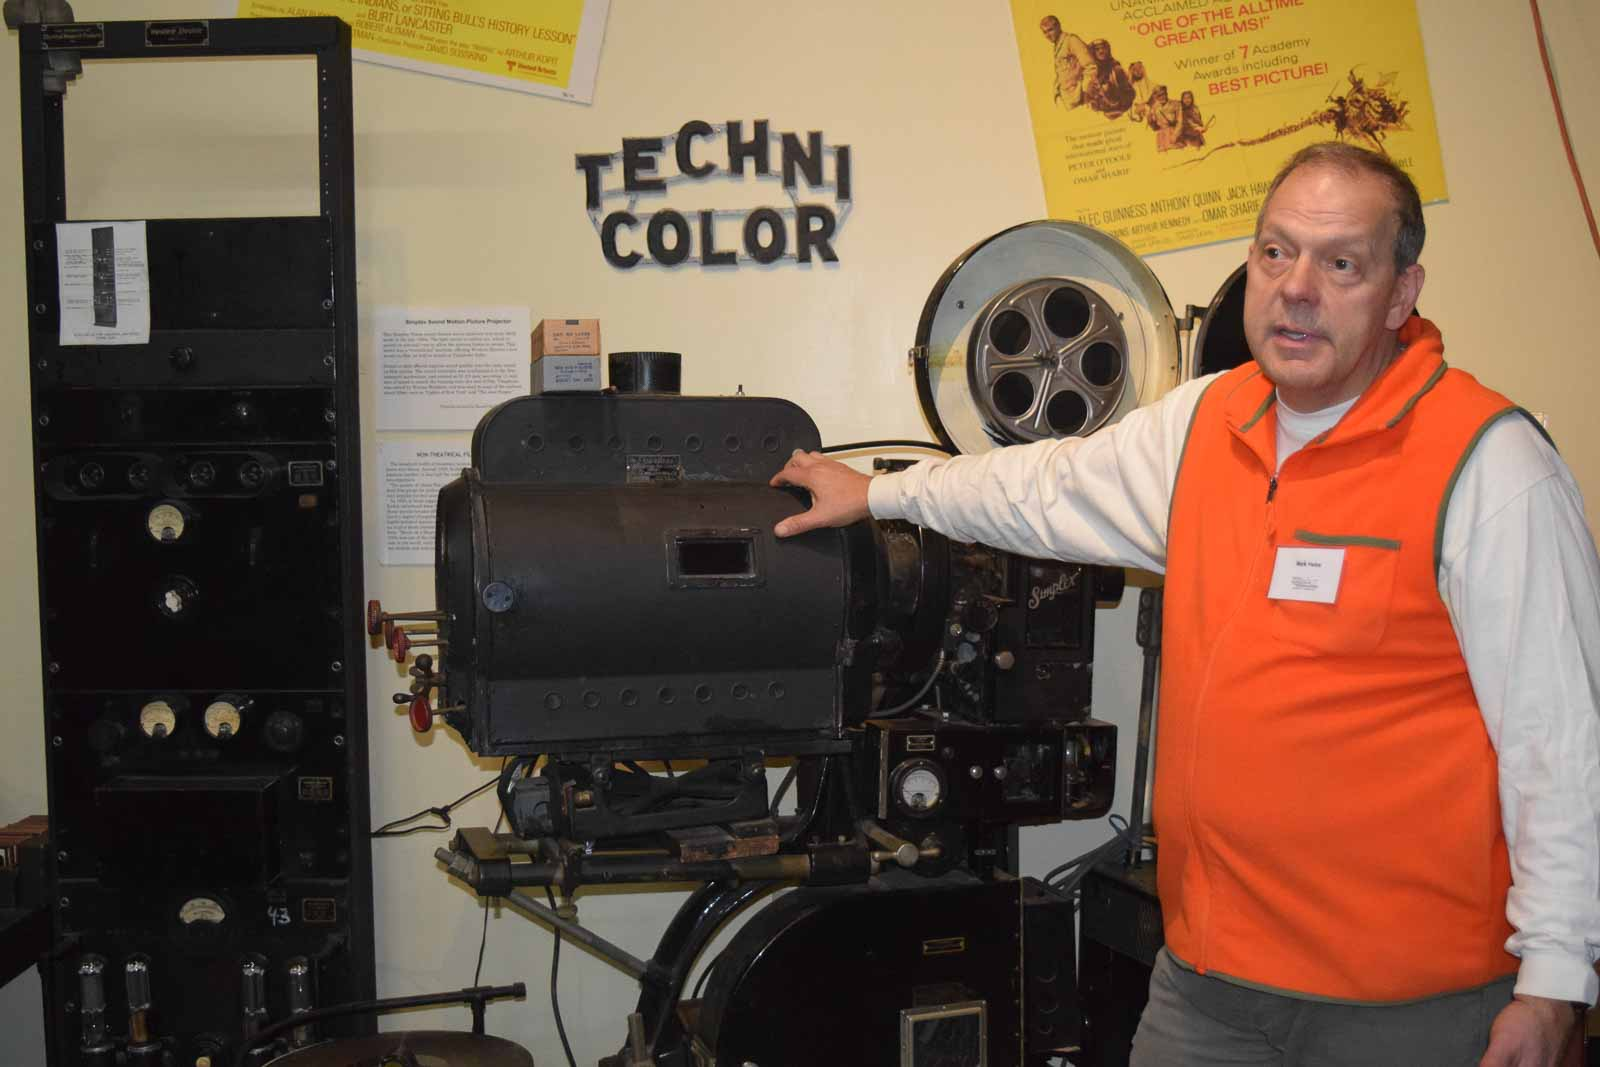 Mark, tour guide volunteer at the Vintage Radio Museum